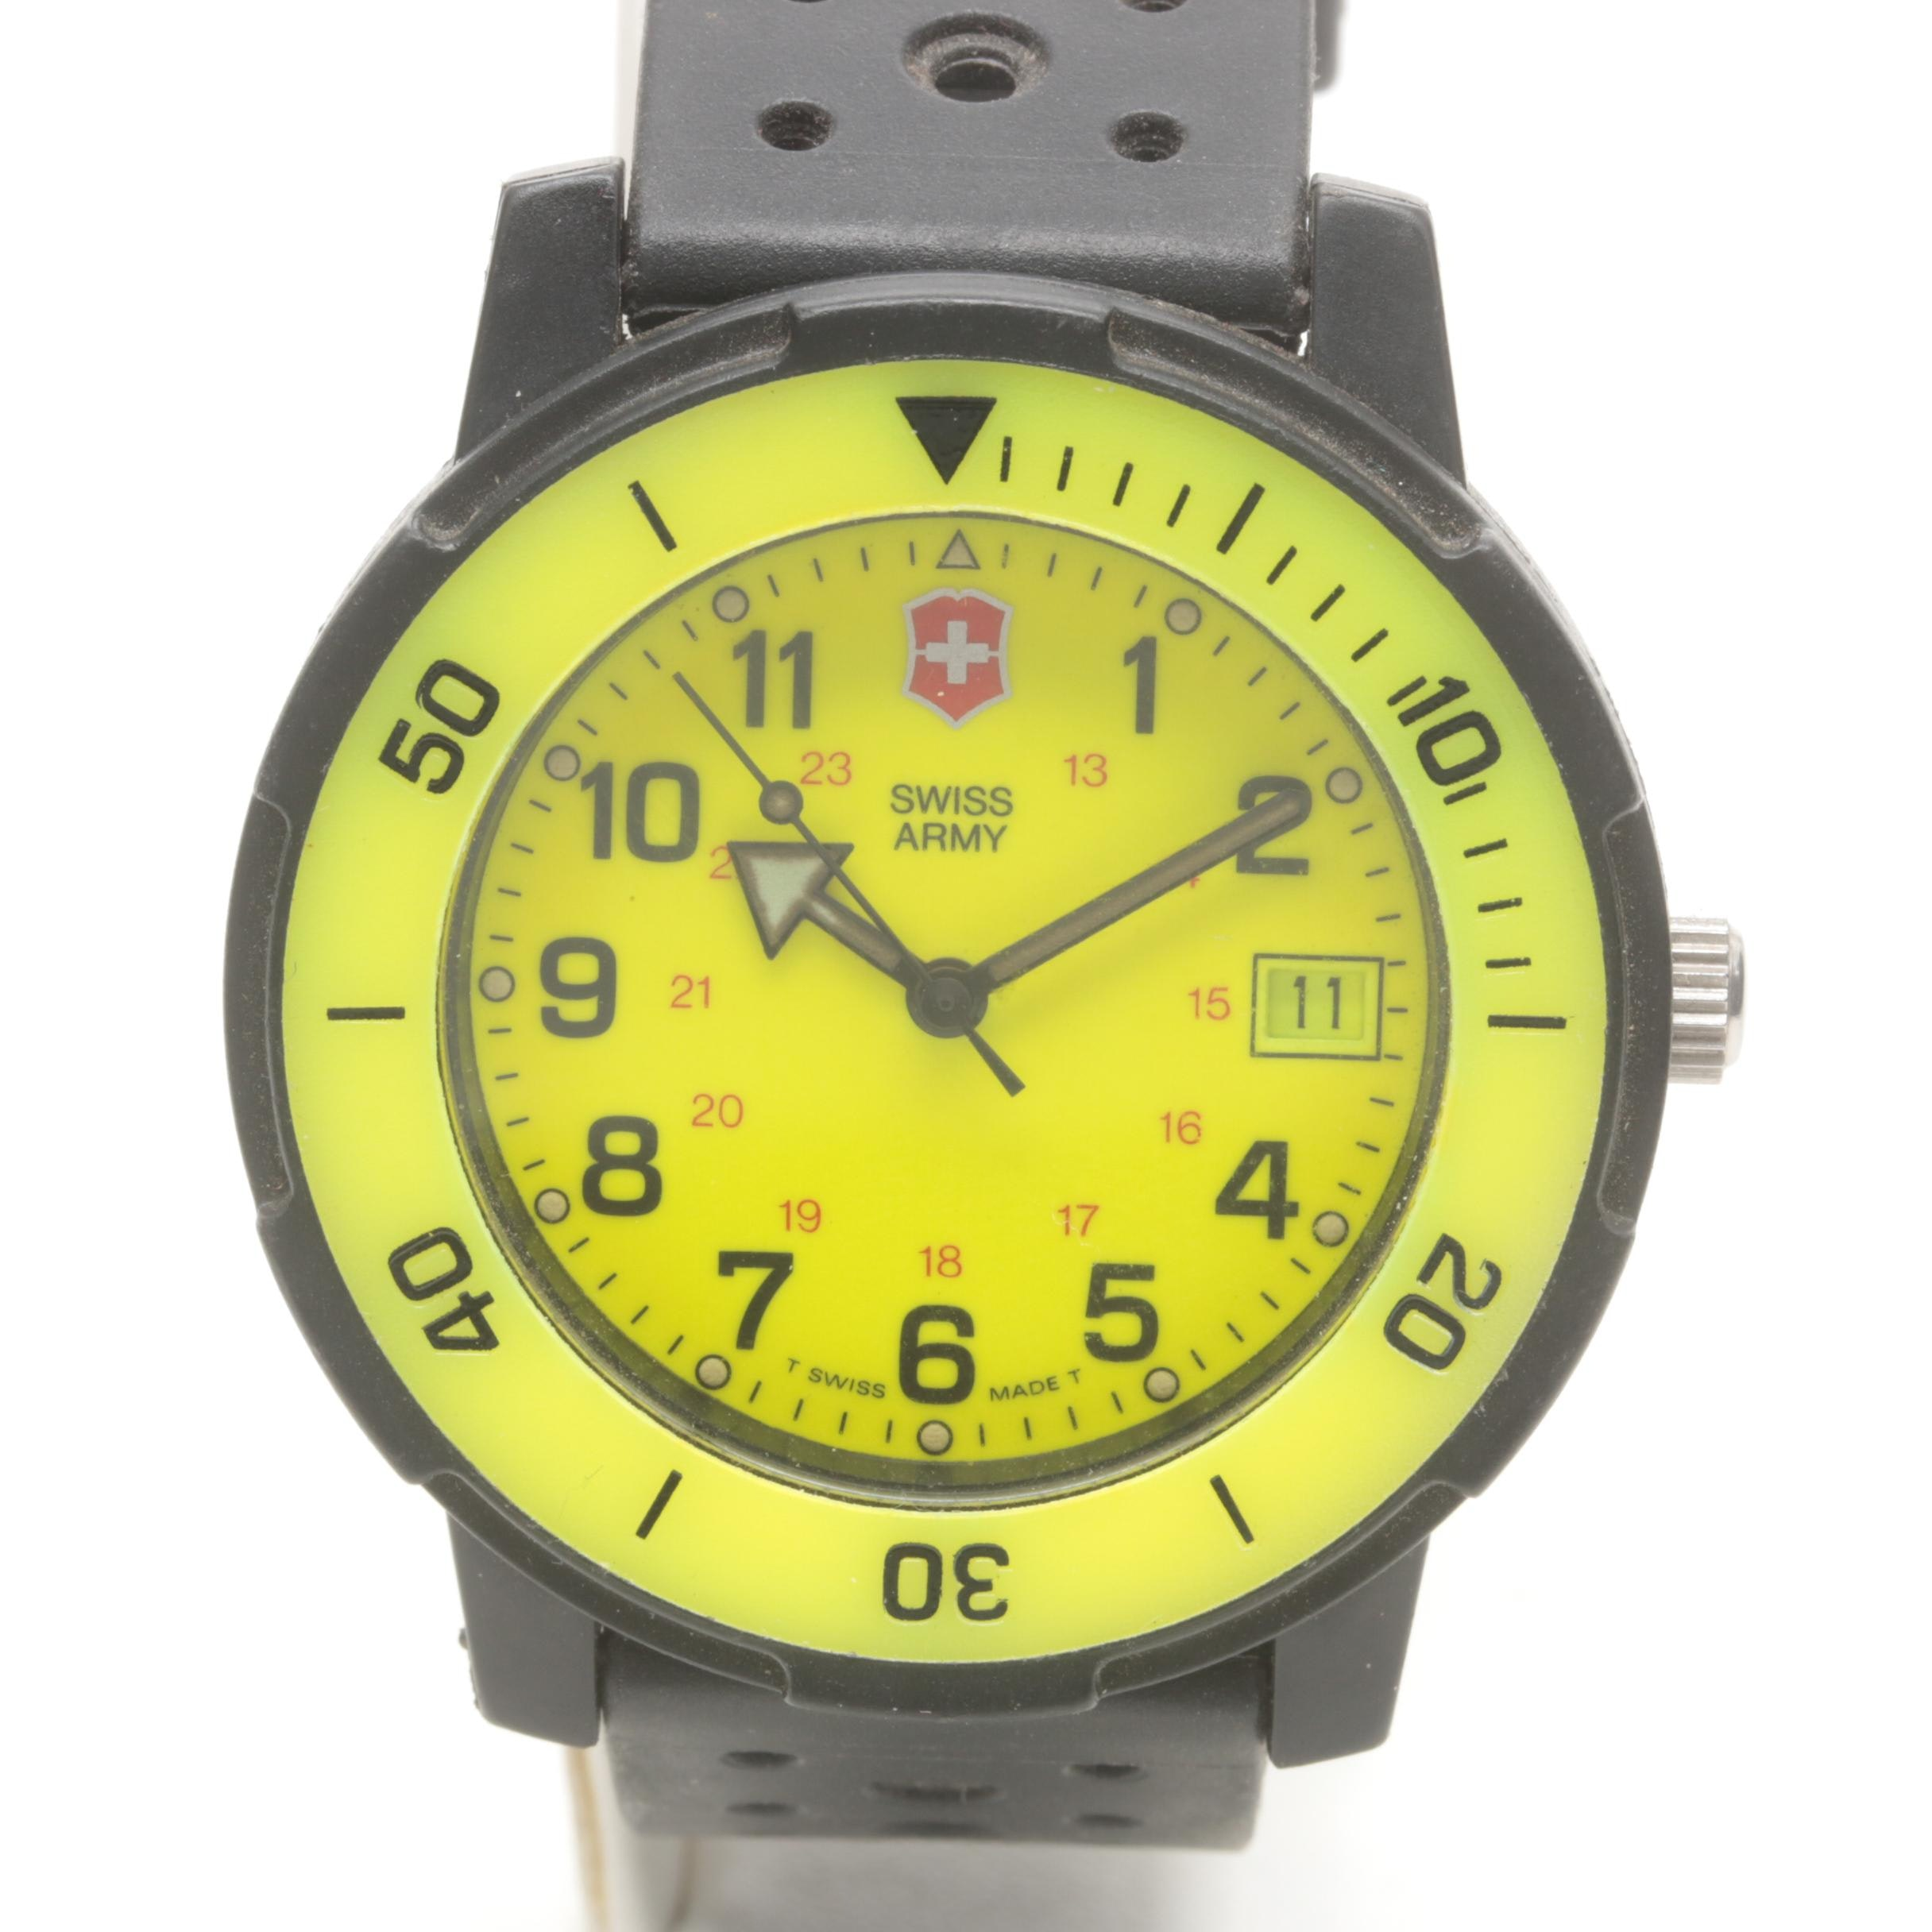 Andre Agassi Edition Swiss Army Wristwatch With Date Window